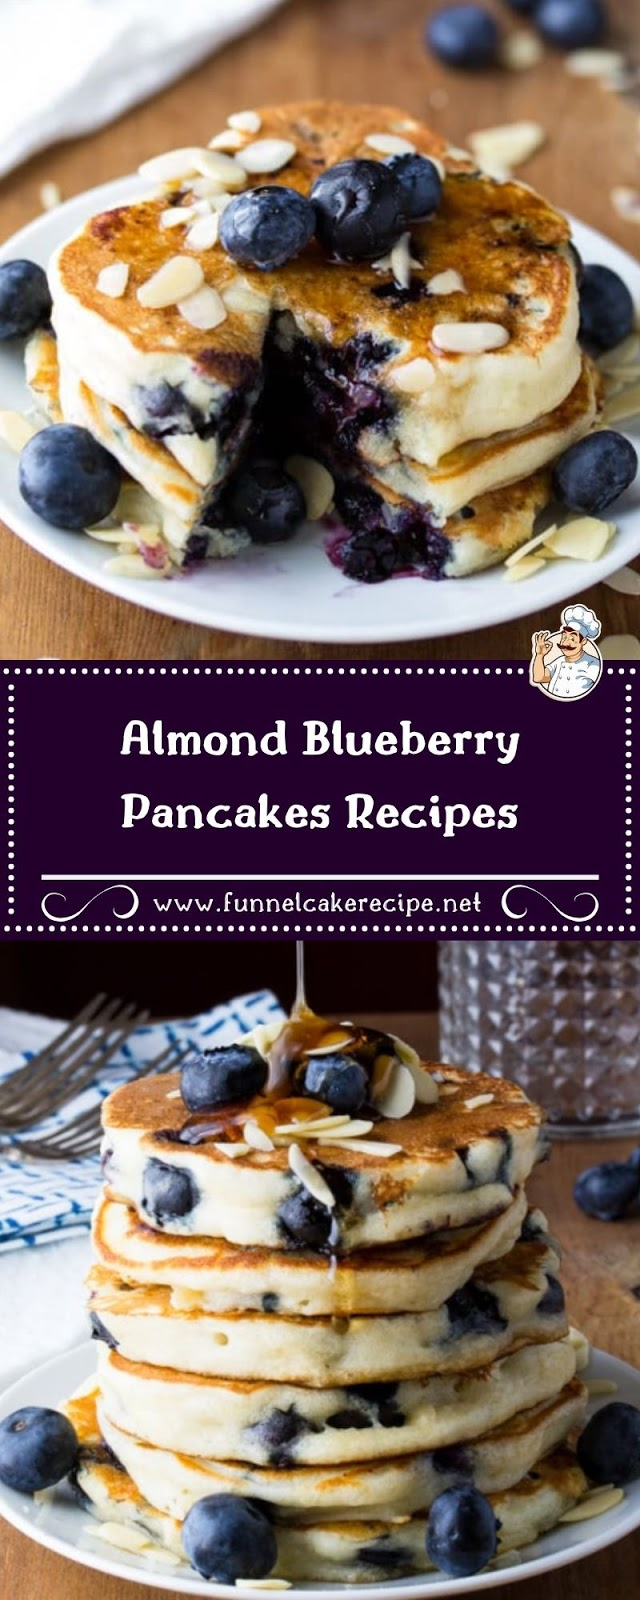 Almond Blueberry Pancakes Recipes